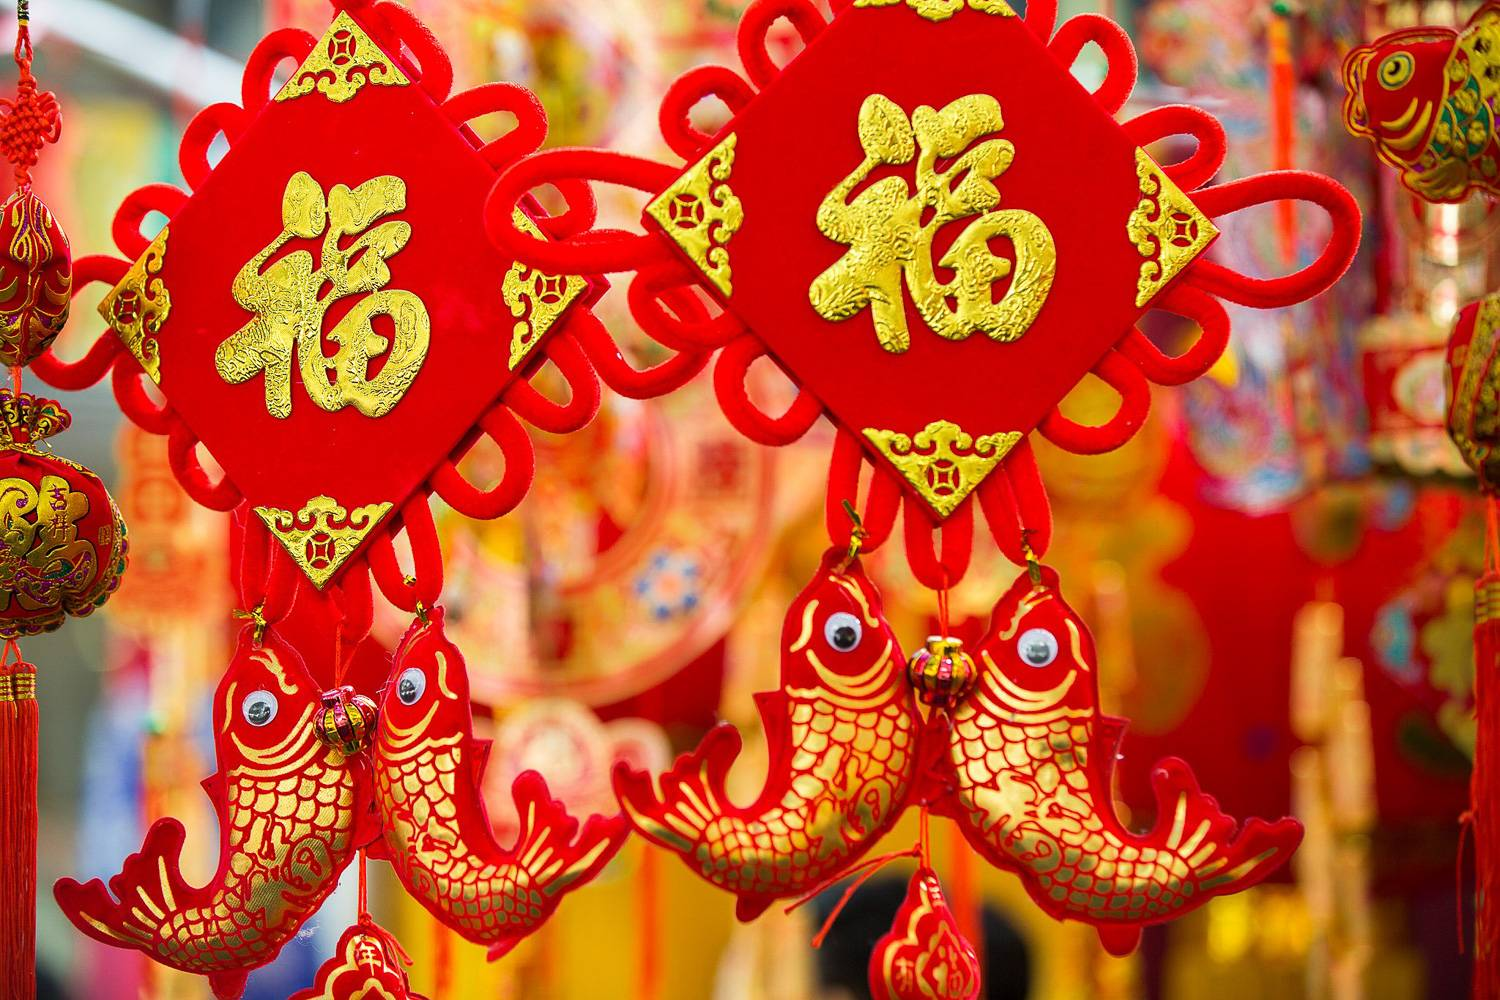 Image of a Chinese decoration hanging with red and gold with fish